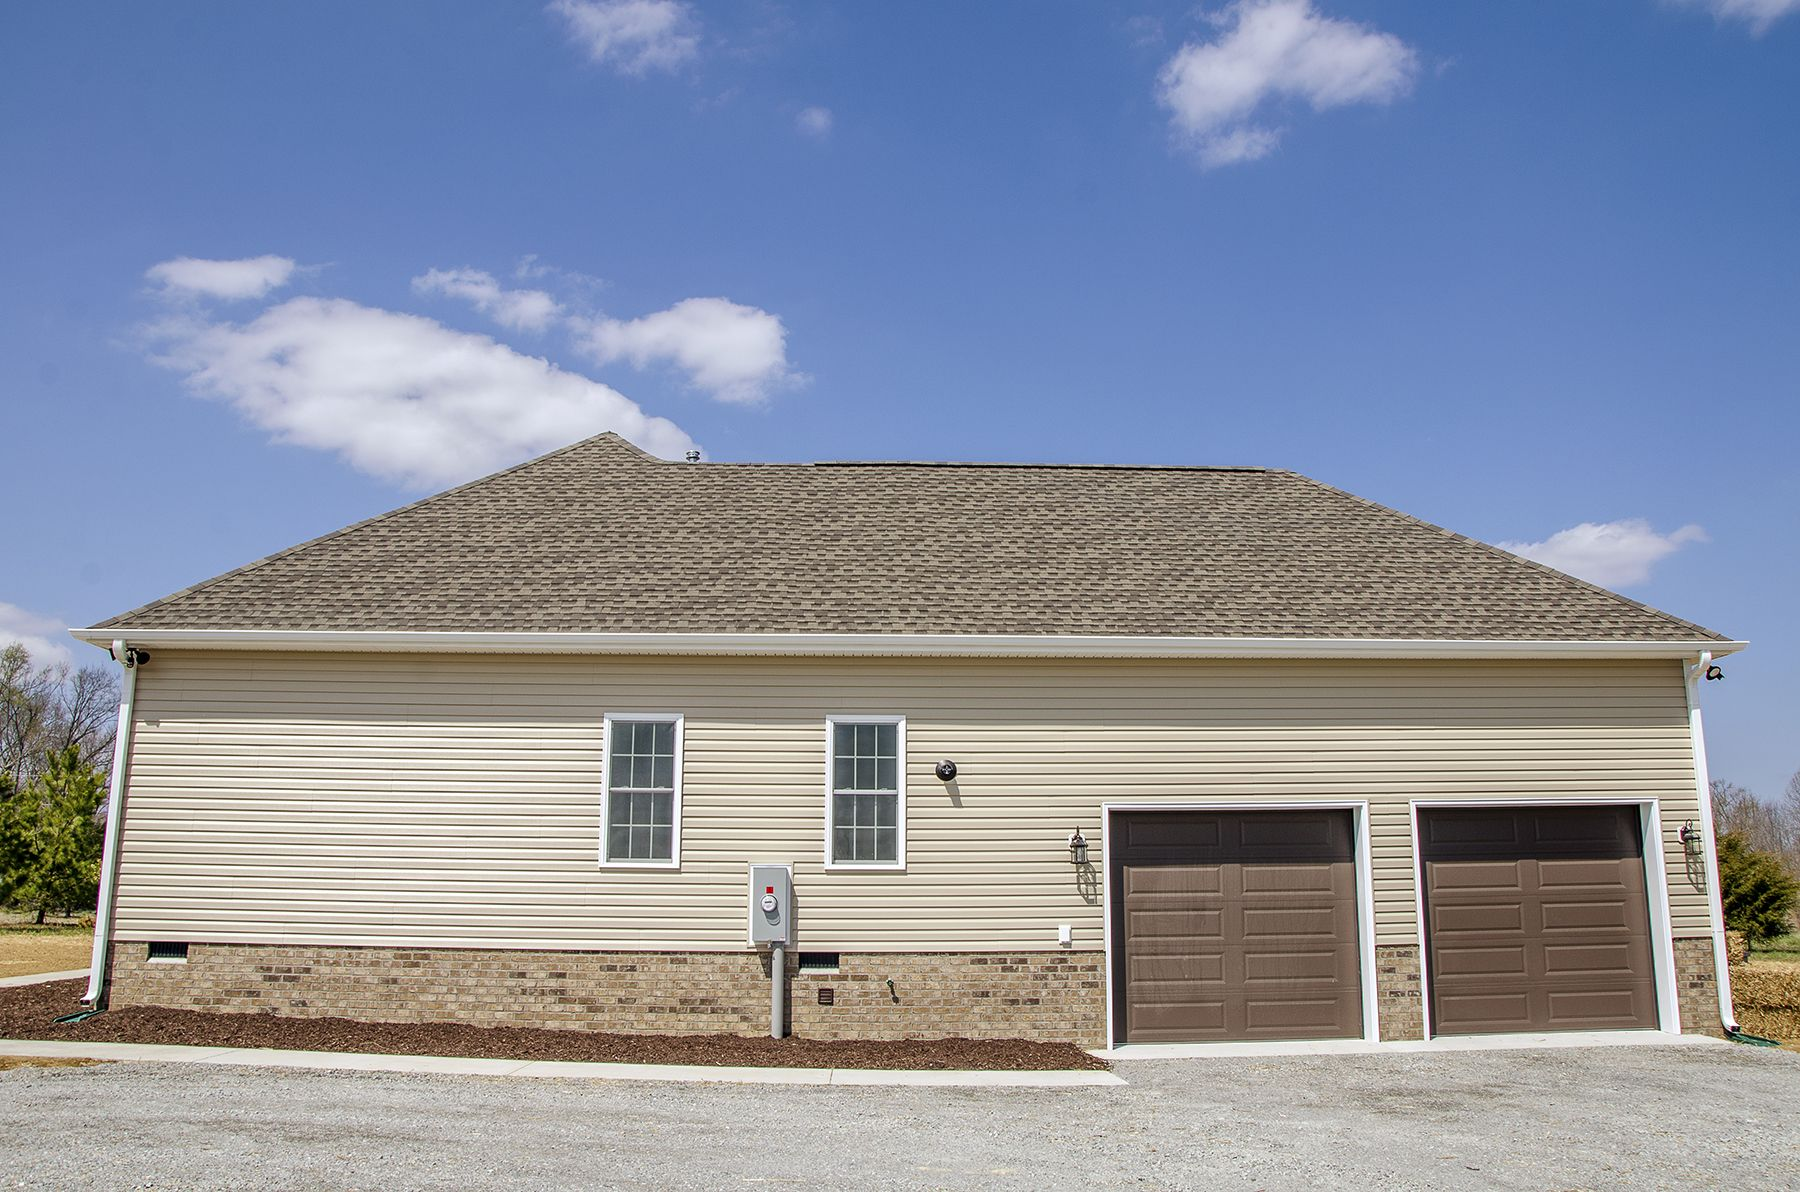 Carriage garage doors without windows  Side view of this home with an attached two car garage and brown